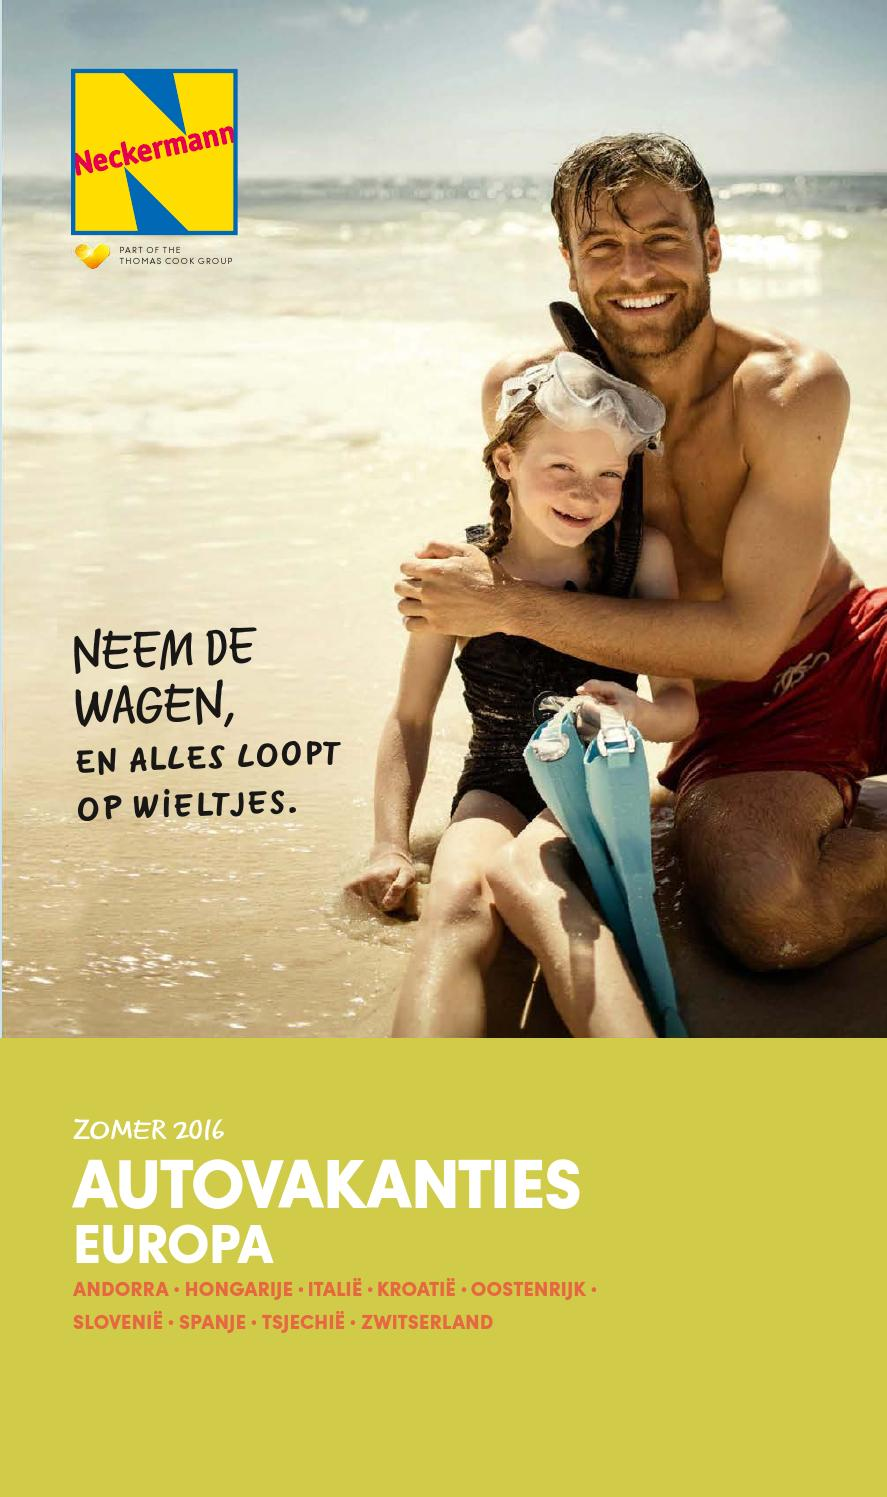 Neckermann Autovakanties Europa Zomer 2016 by Neckermann Belgium ...